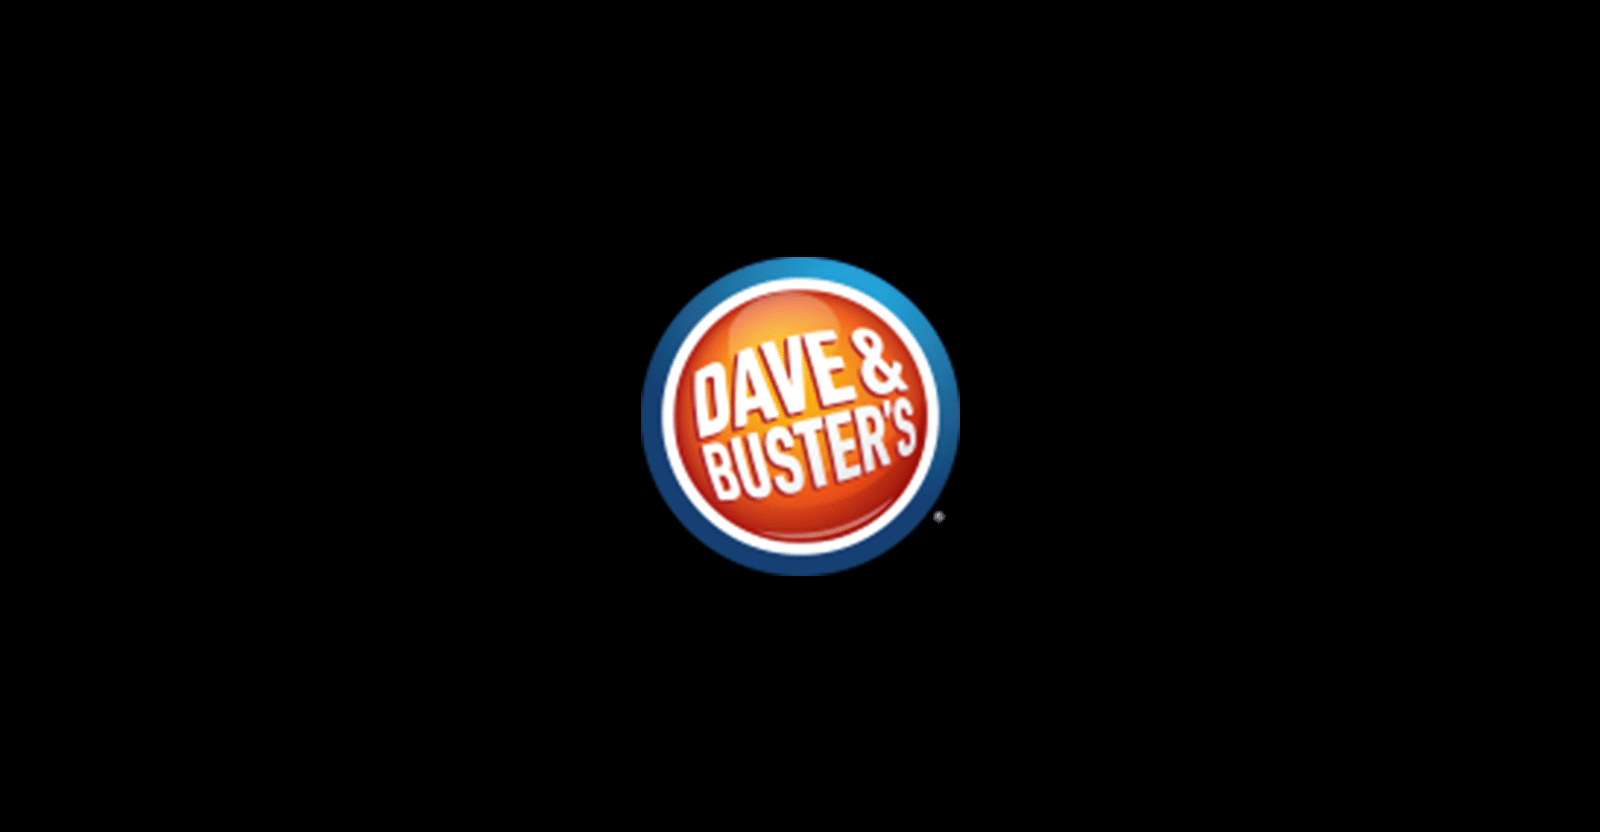 dave and busters gluten-free menu